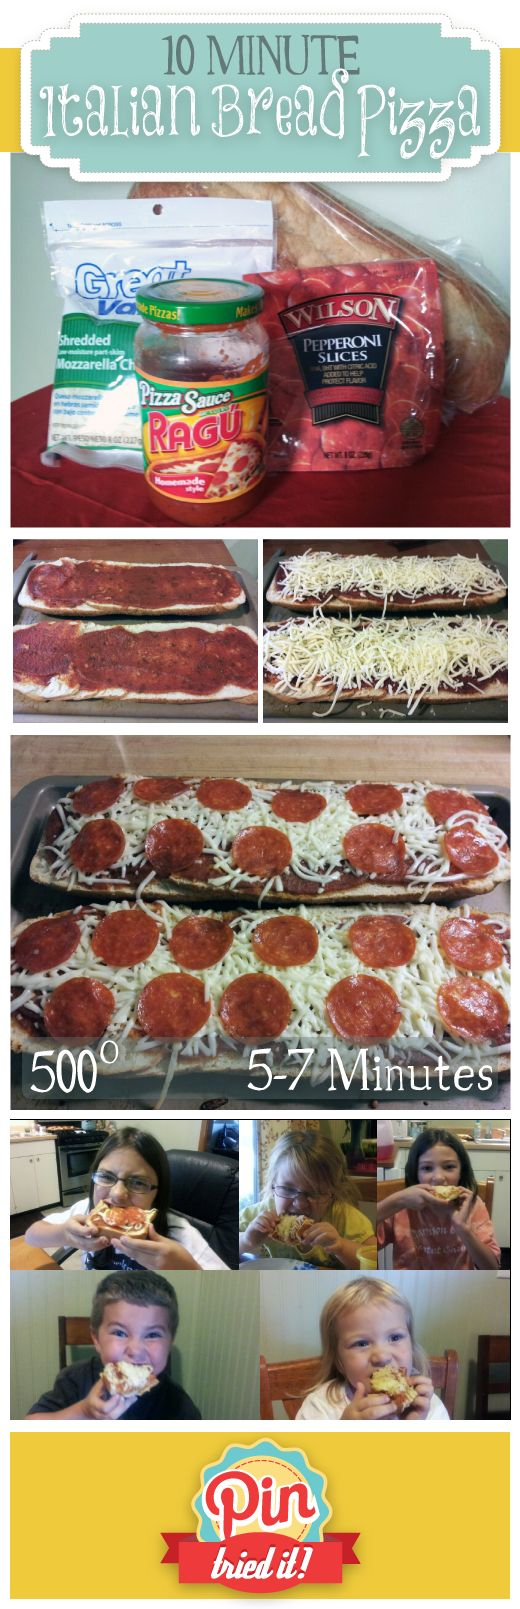 10 Minute Italian Bread Pizza Dinner. Easy and was super yummy. Fast to make and will definitely be made many times in the future.